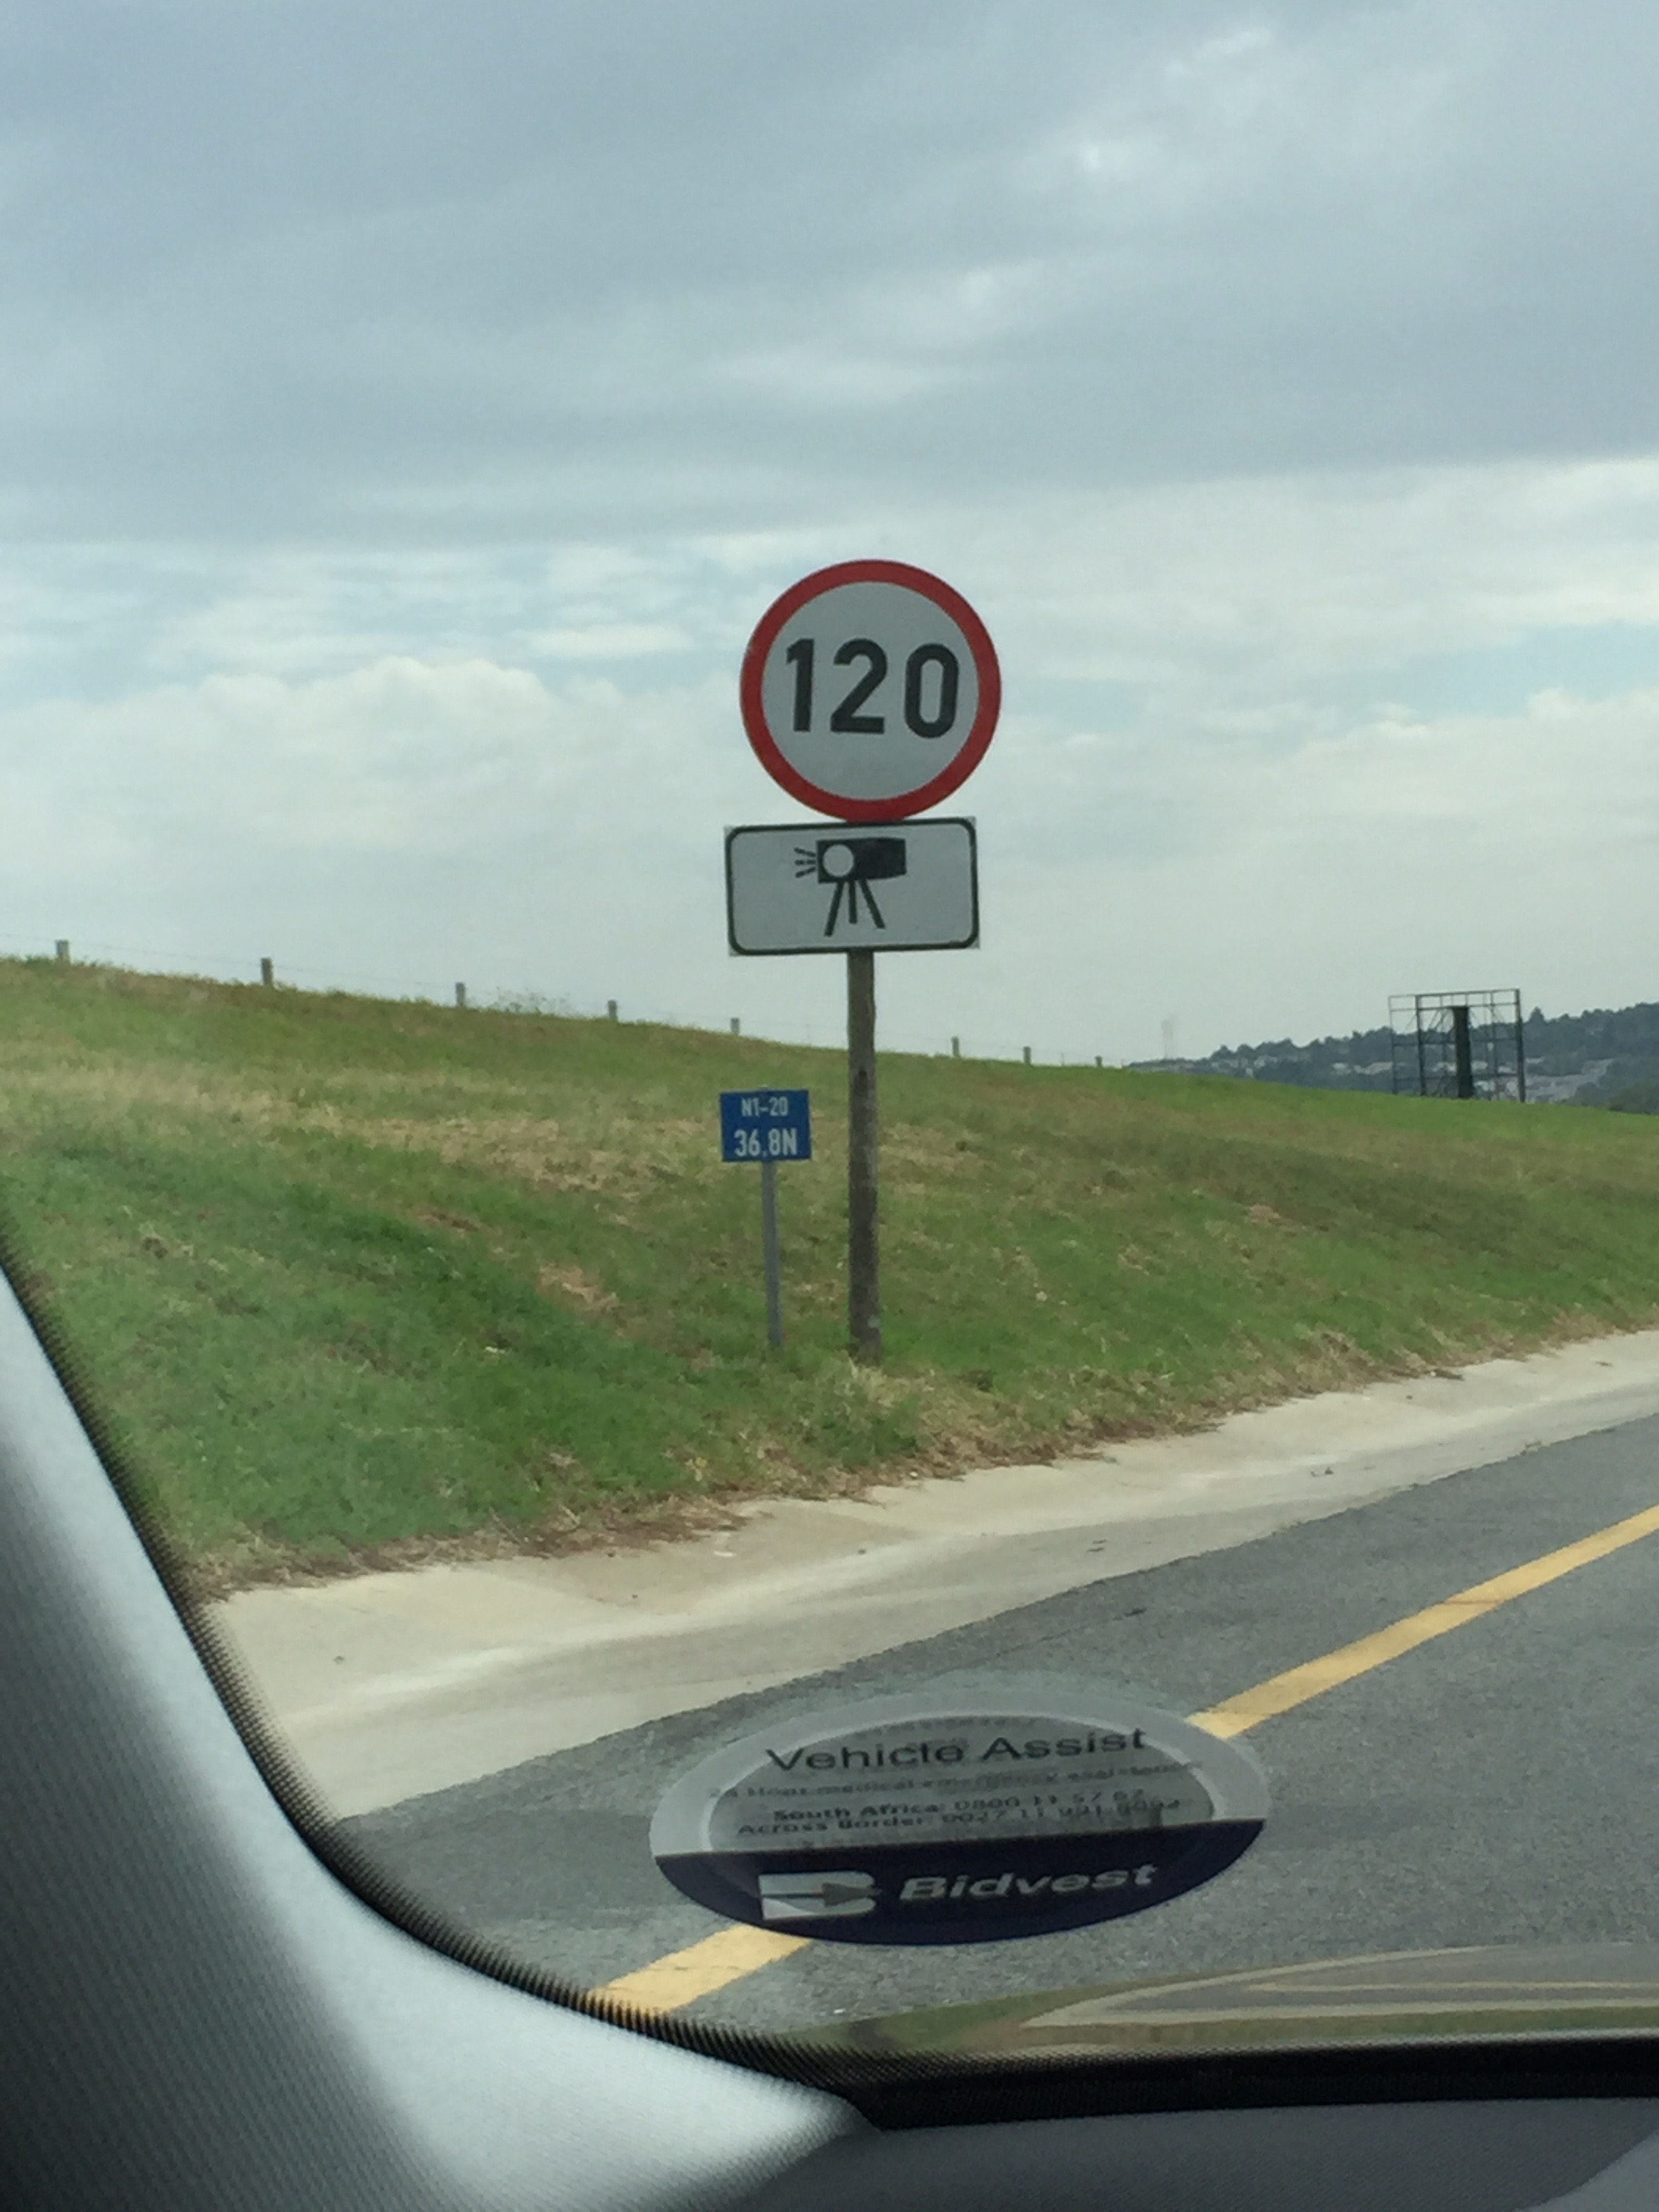 Speed cameras were everywhere! Note: It's not 120 mph, but kph. Sadly.